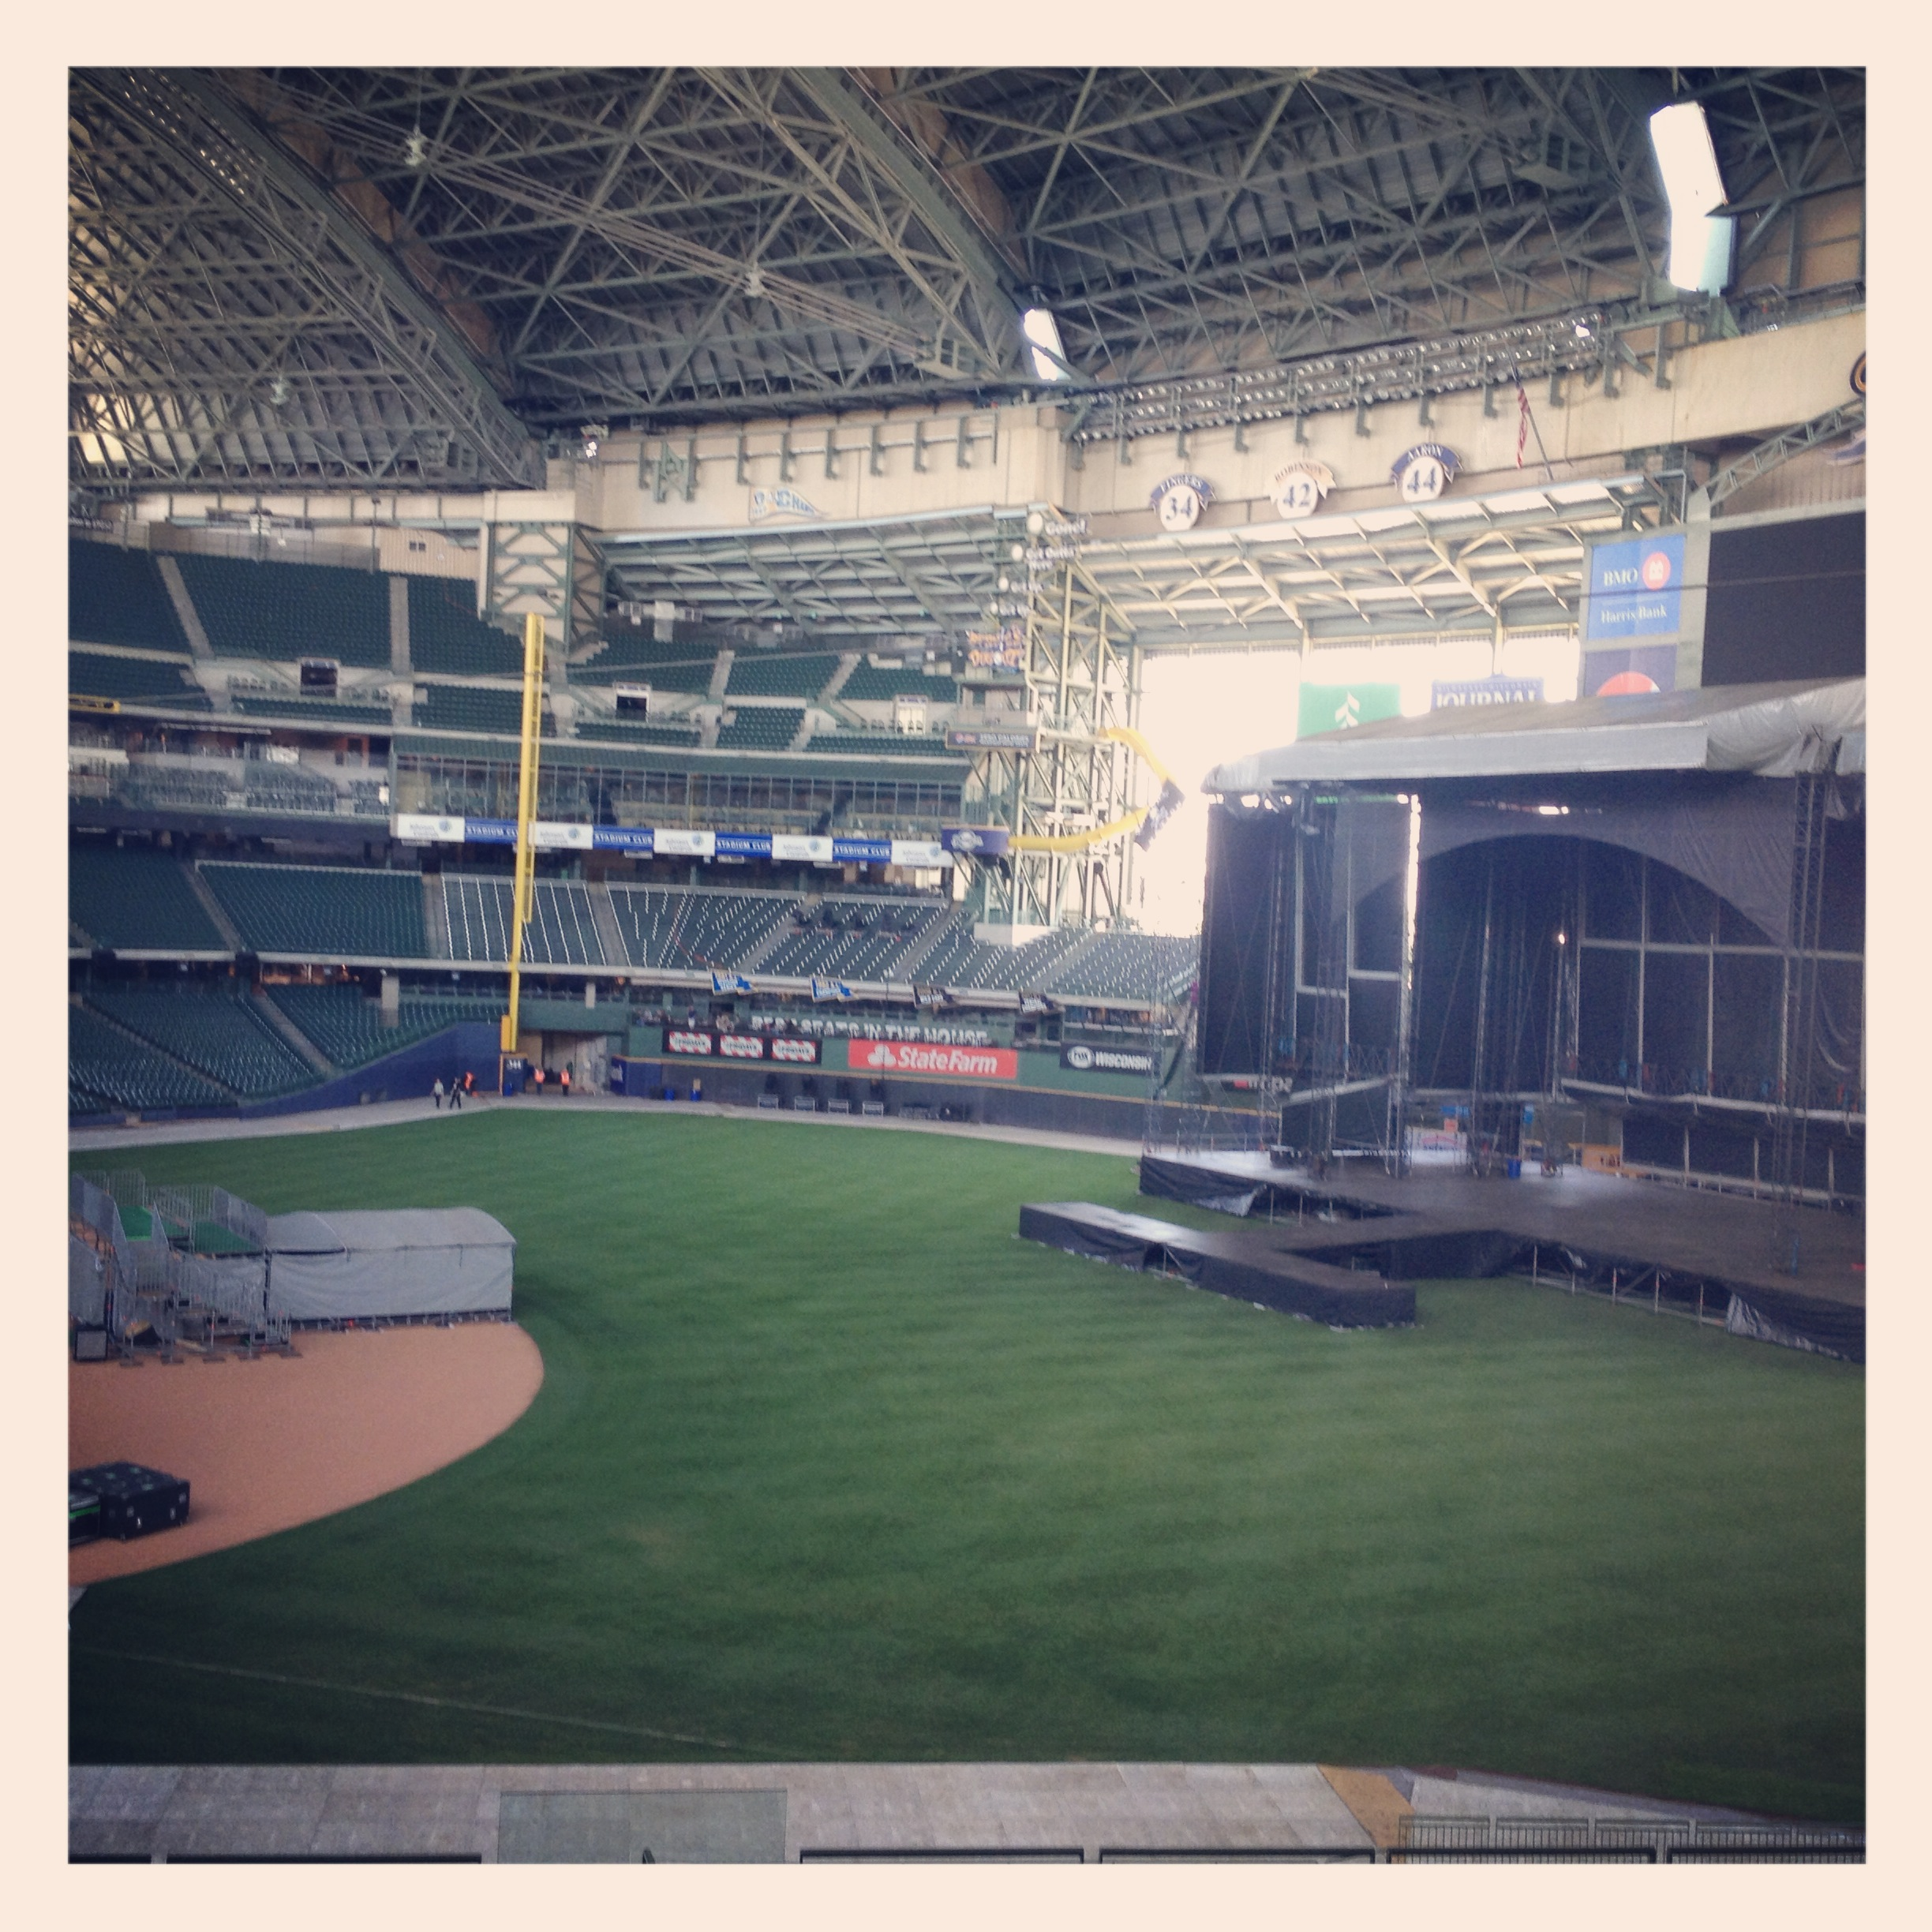 Concert-set-up-at-miller-park-3